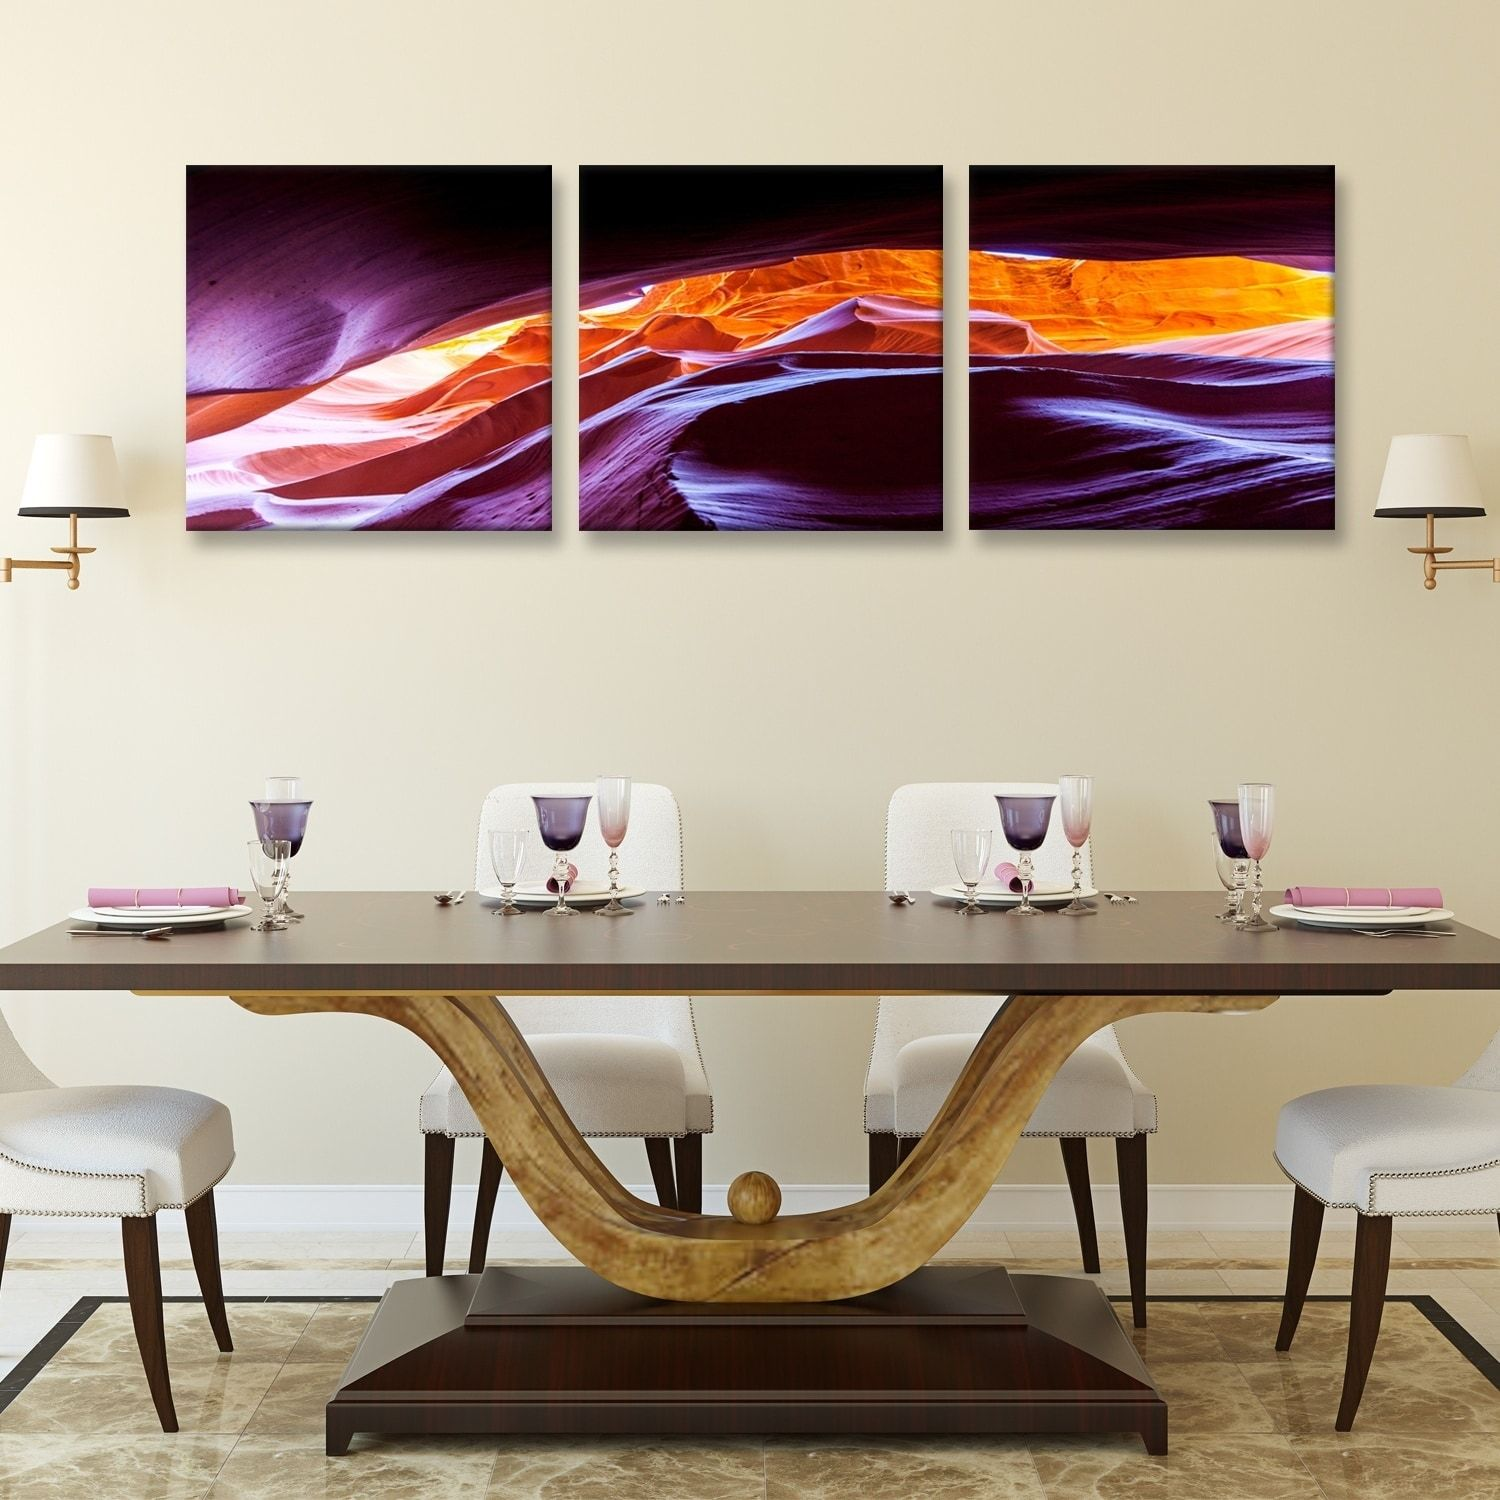 Furinno Seni Scenic Canyon Antelope 3 Panel Canvas On Wood Frame,